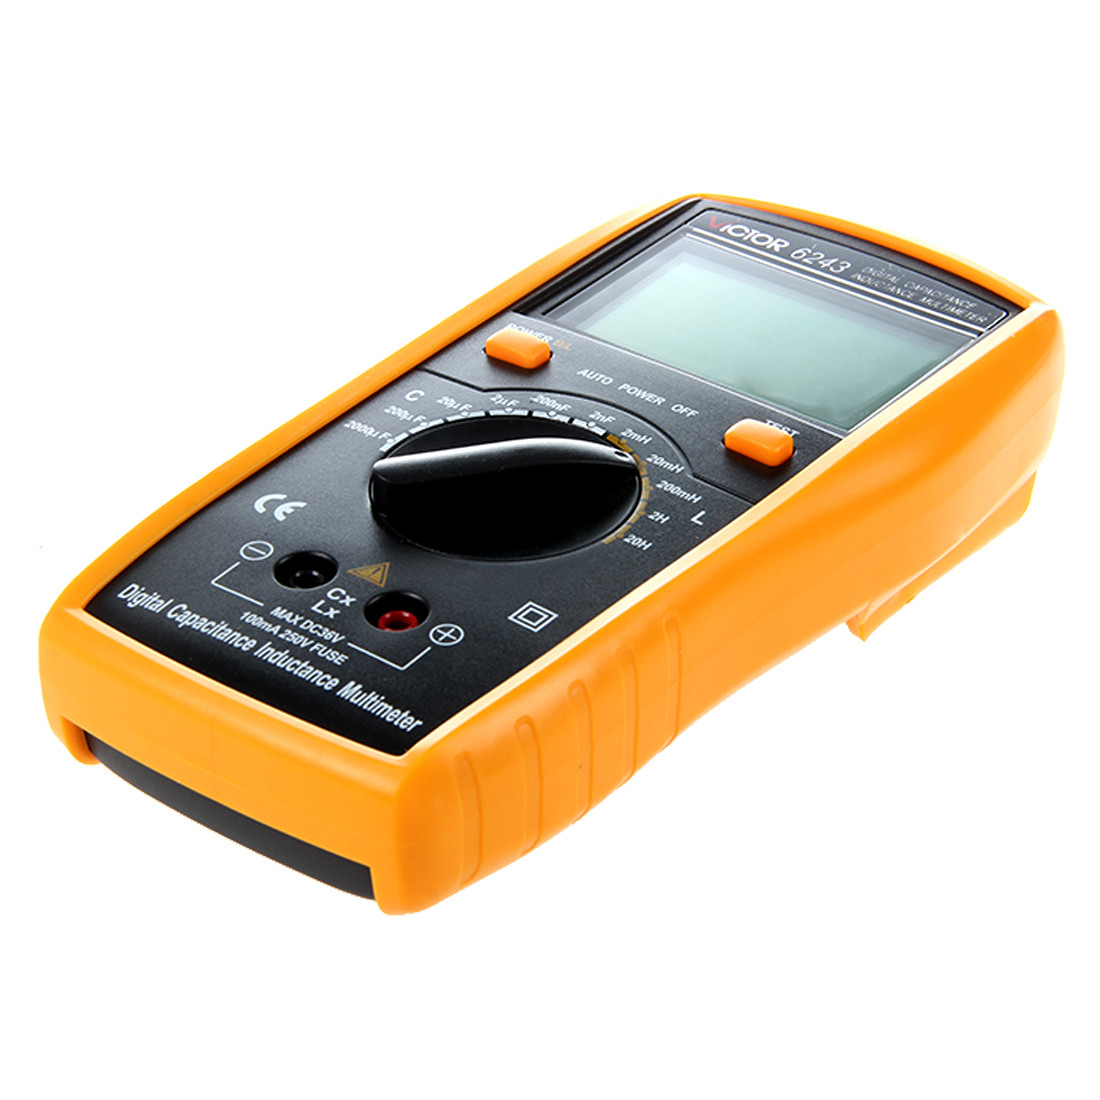 VICTOR VC6243 Digital LCR Multimeter with LCD Display yellow & Black victor dm6235p digital tachometer